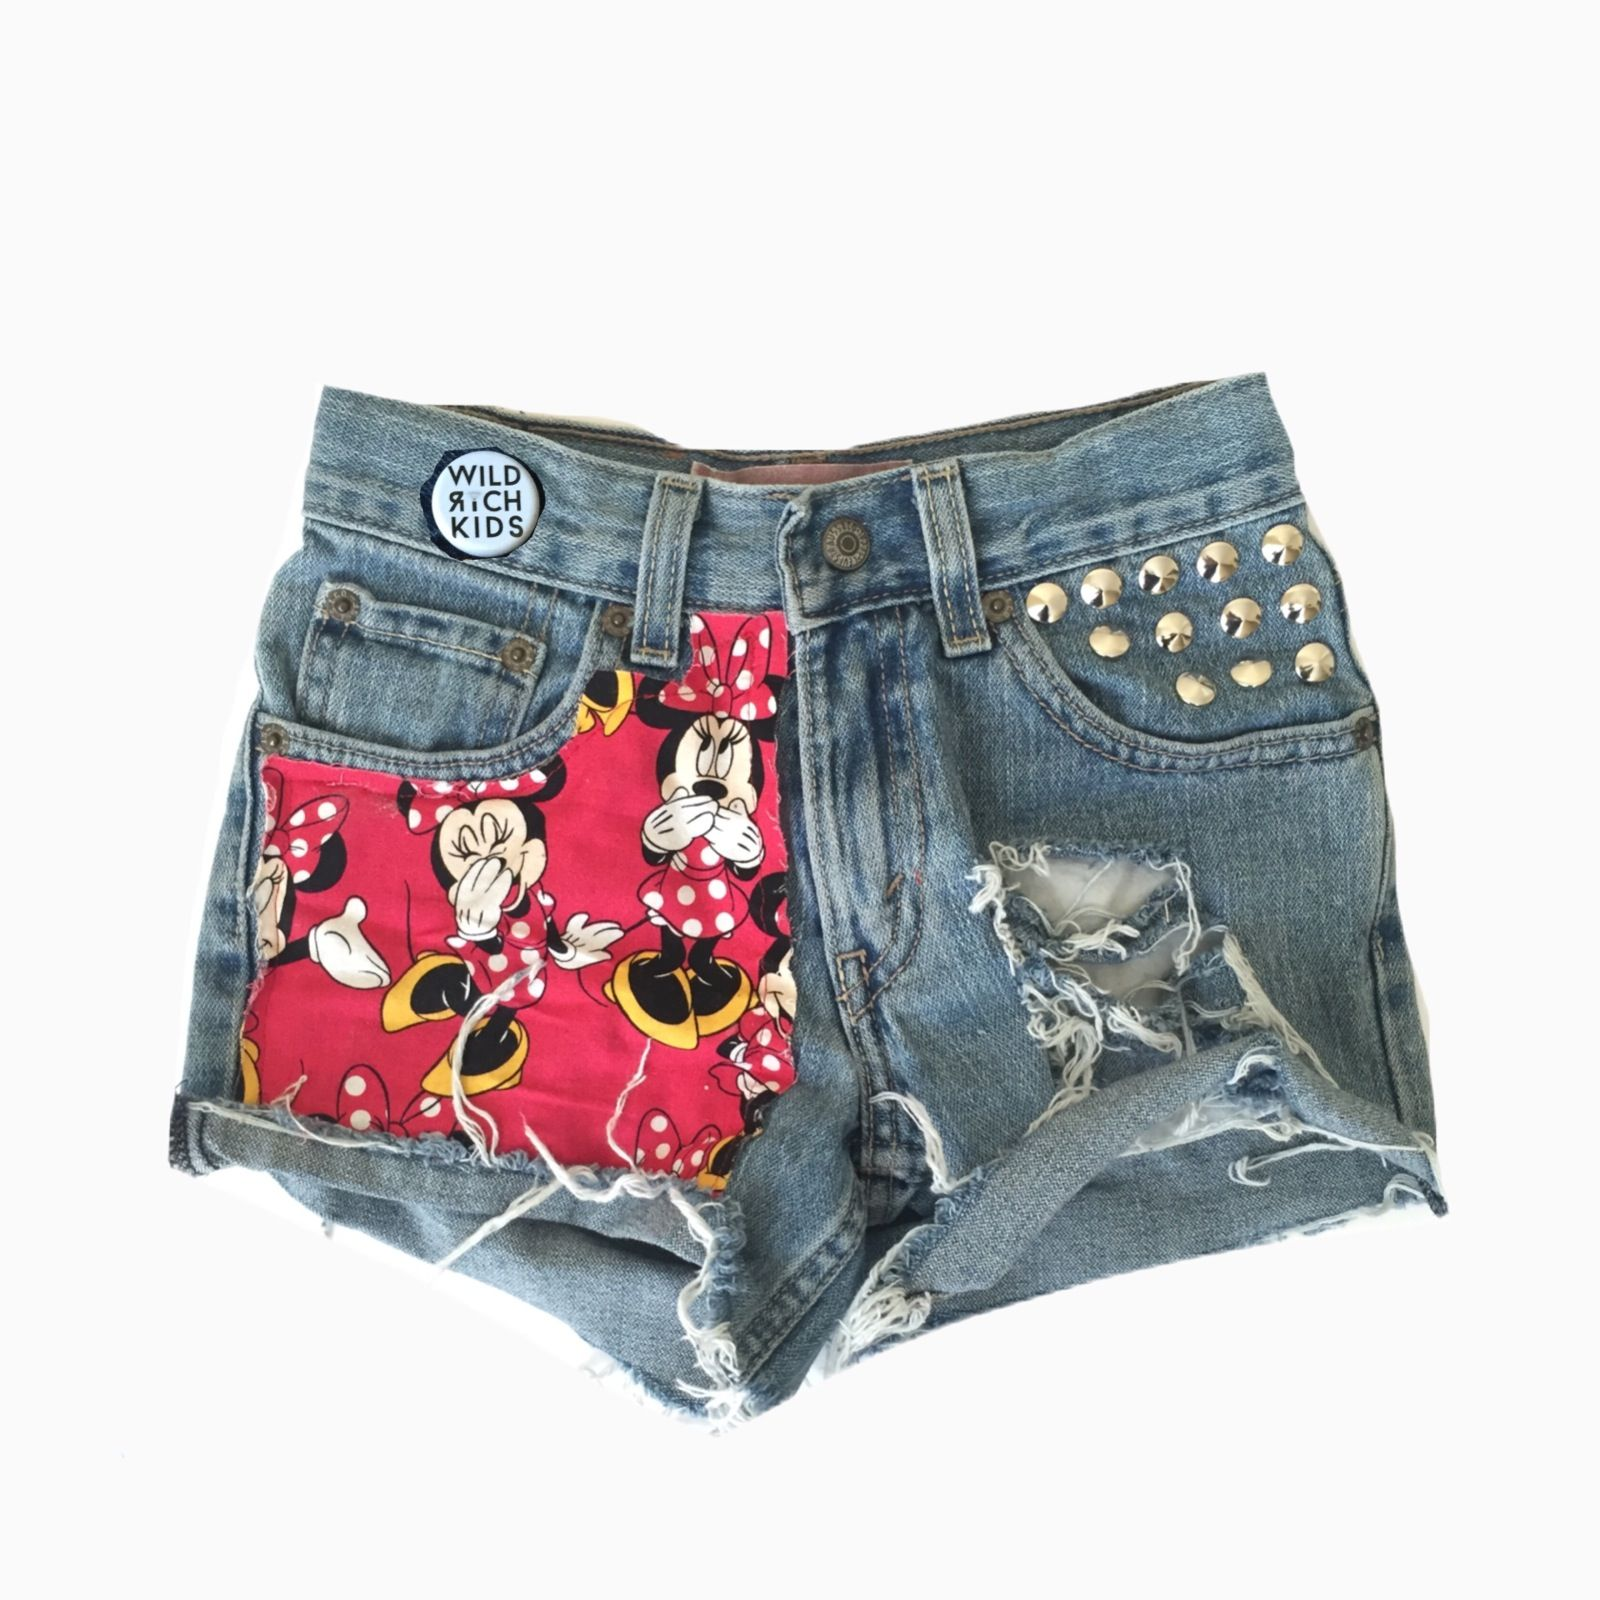 These shorts have a super cute and happy Minnie Mouse fabric sewn ...